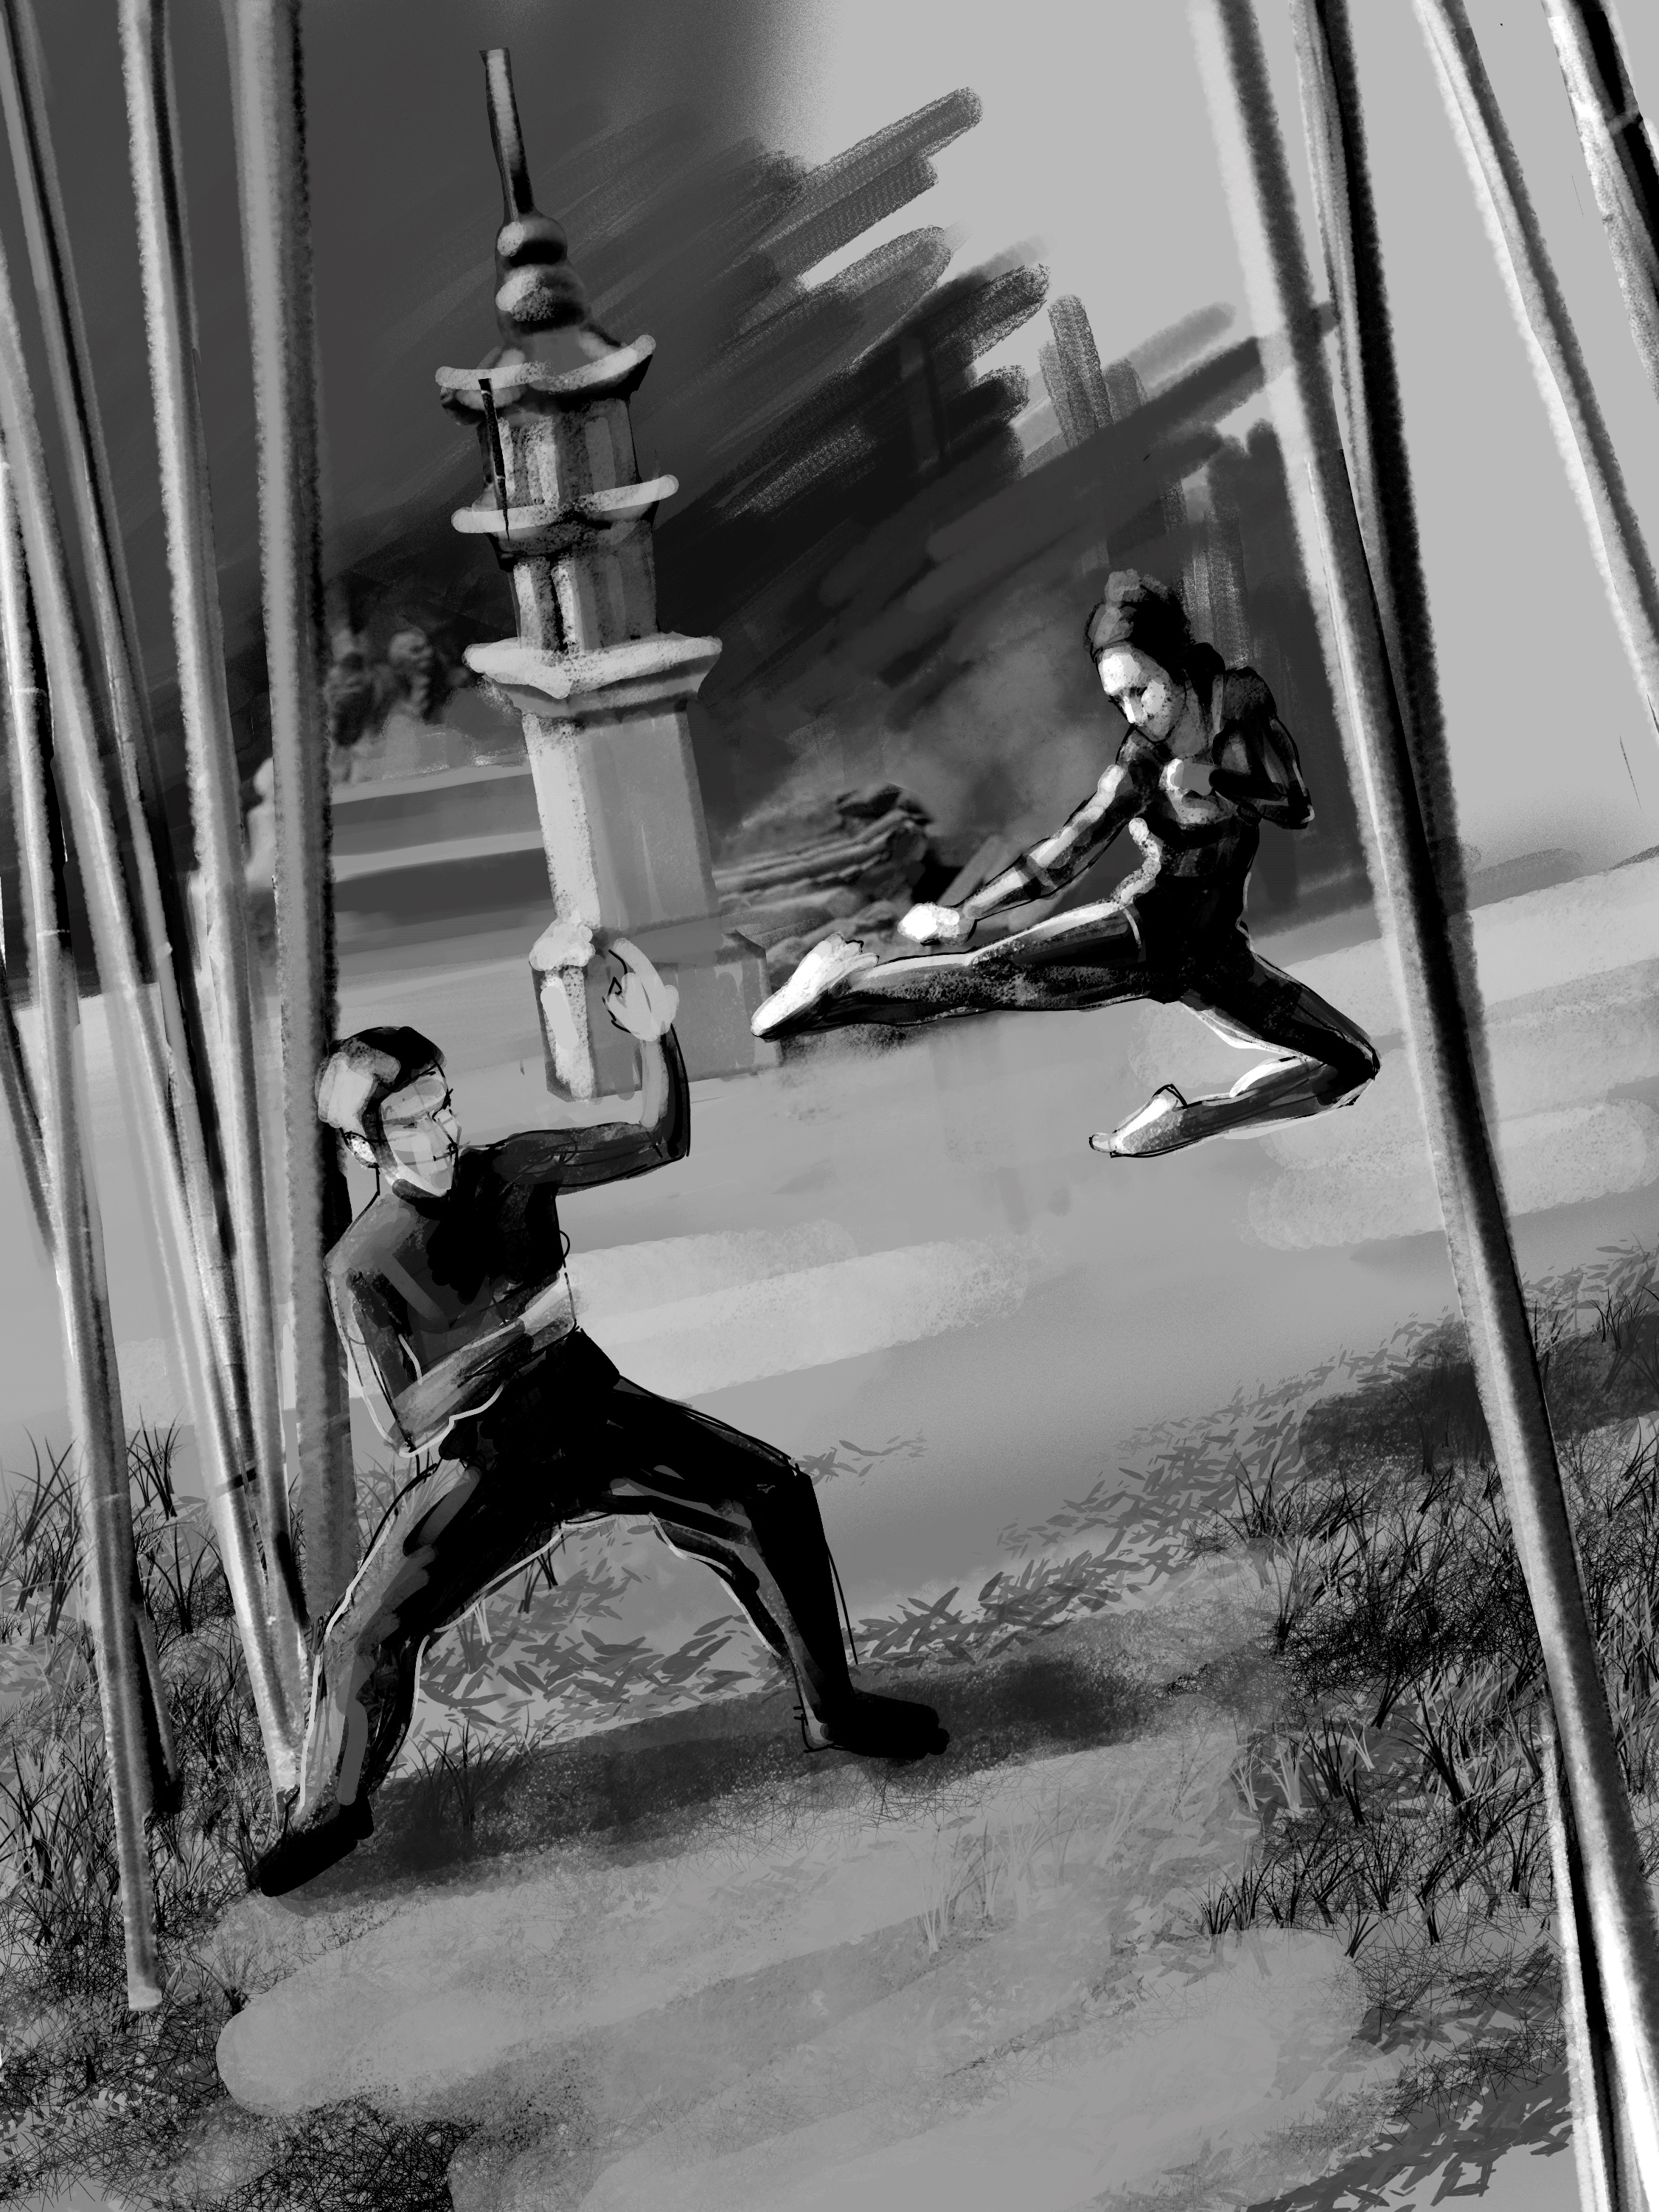 wip 1 Shadow fight 2.jpg